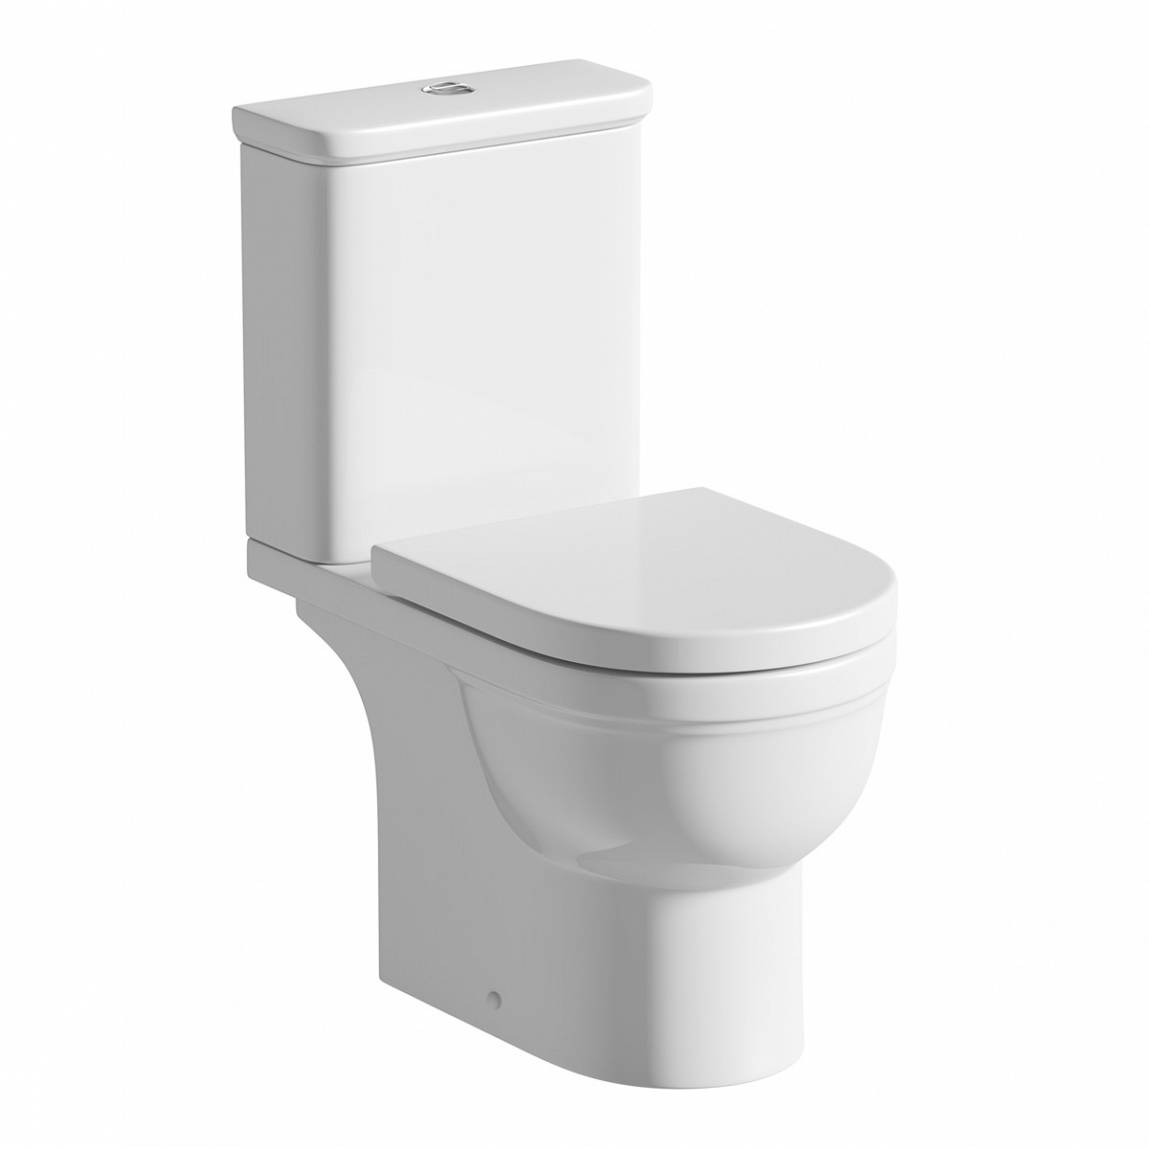 Image of Deco Close Coupled Toilet exc Seat Special Offer